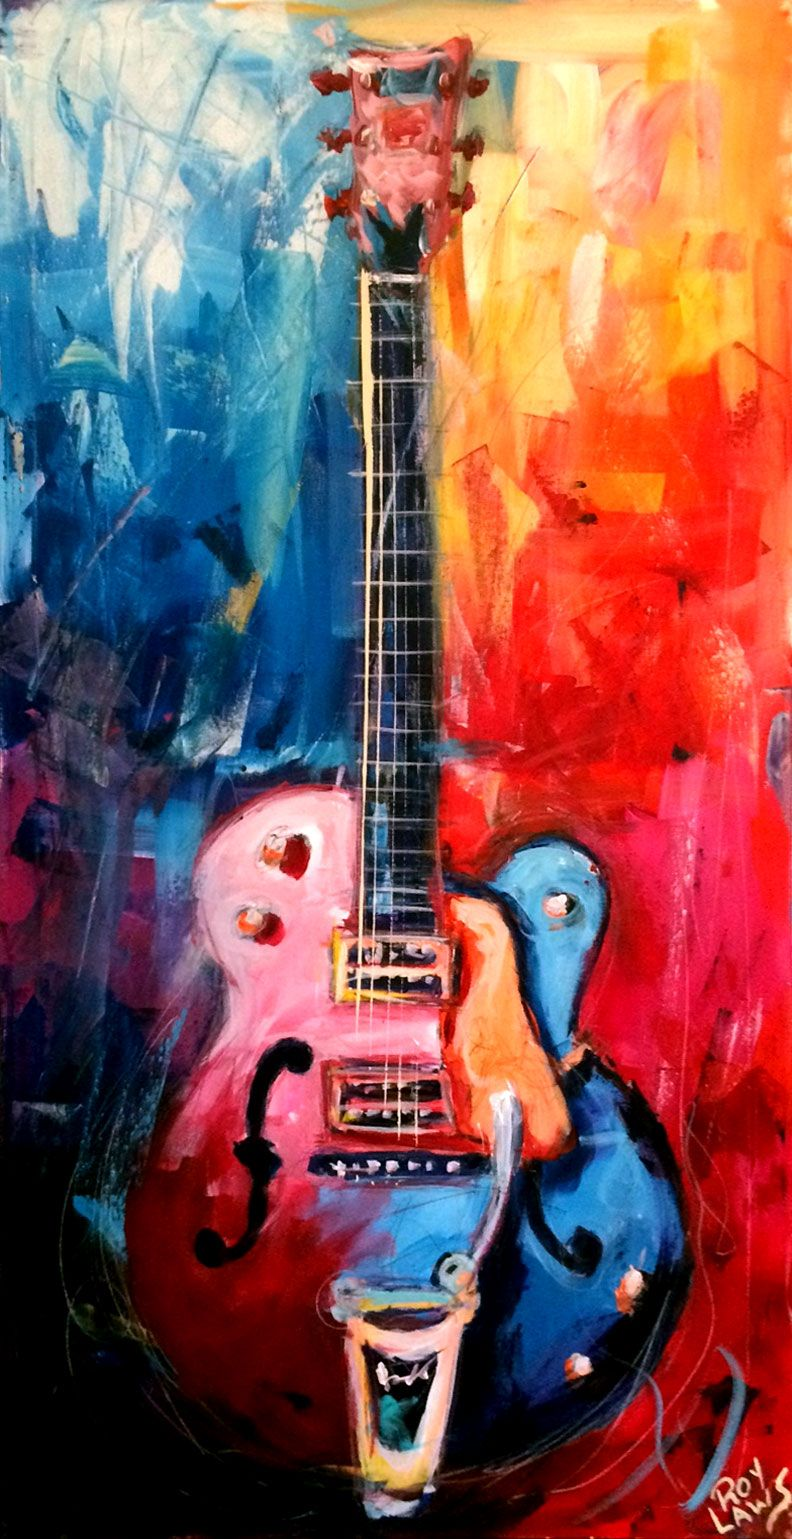 Gretsch White Falcon. This was painted live at a RAW Artist Show in ...